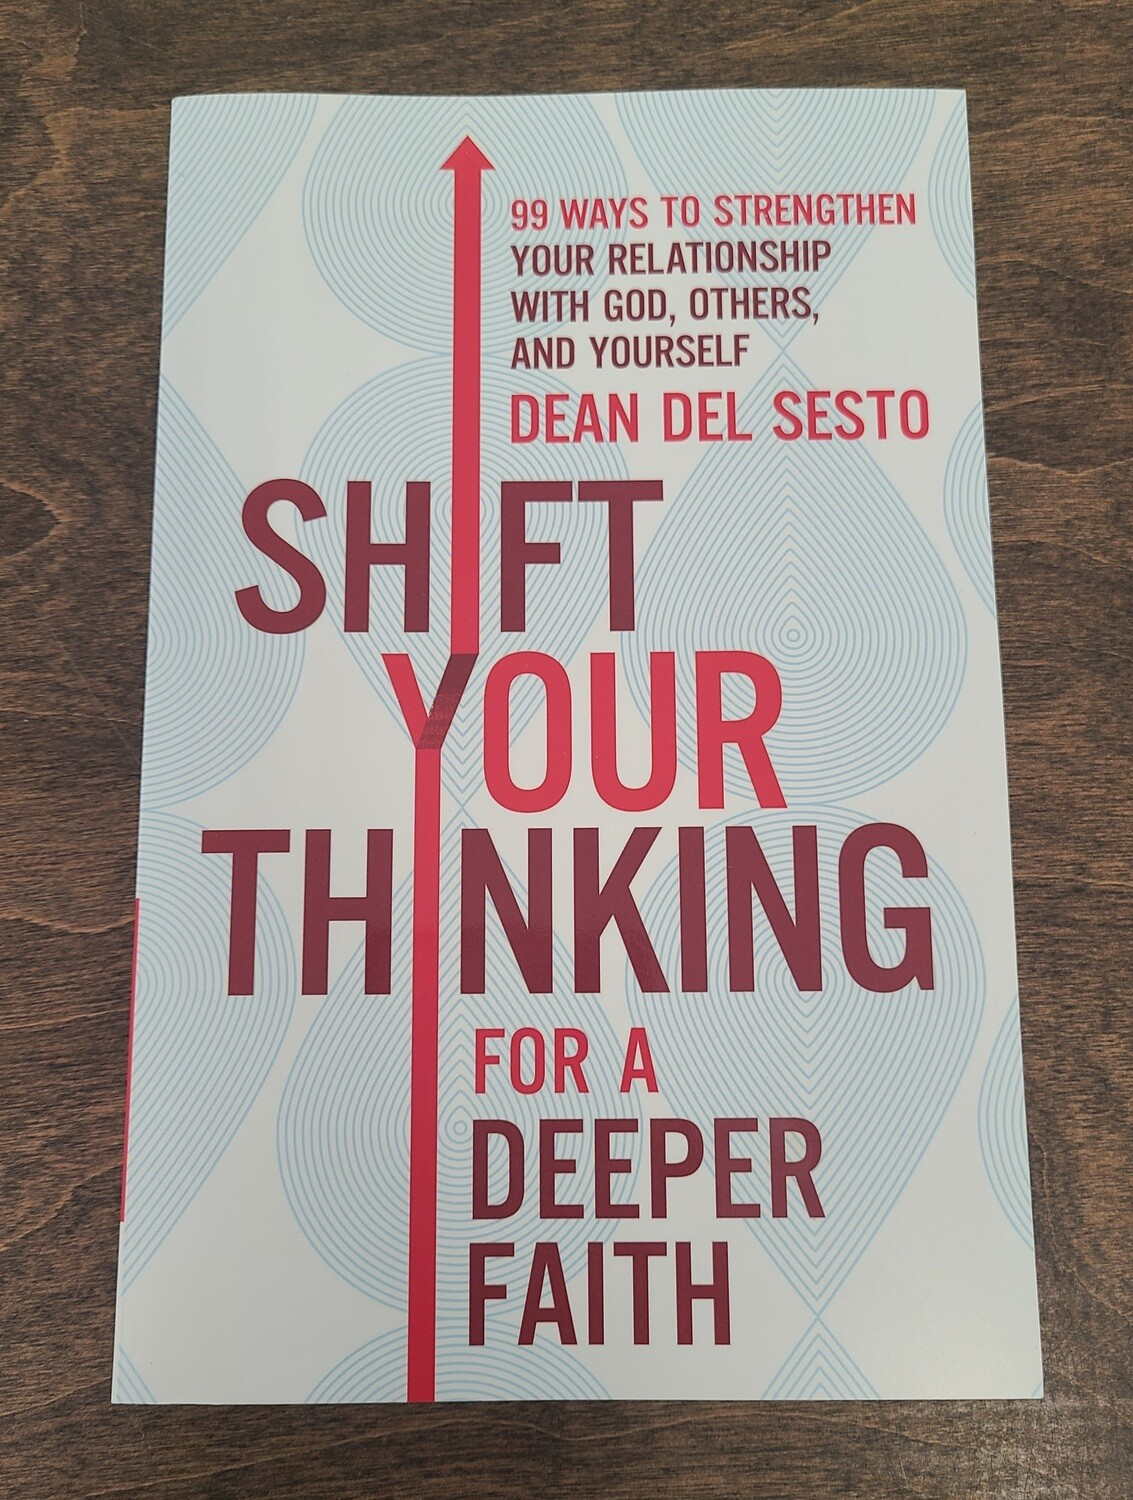 Shift Your Thinking for a Deeper Faith: 99 Ways to Strengthen Your Relationship with God, Others, and Yourself by Dean Del Sesto